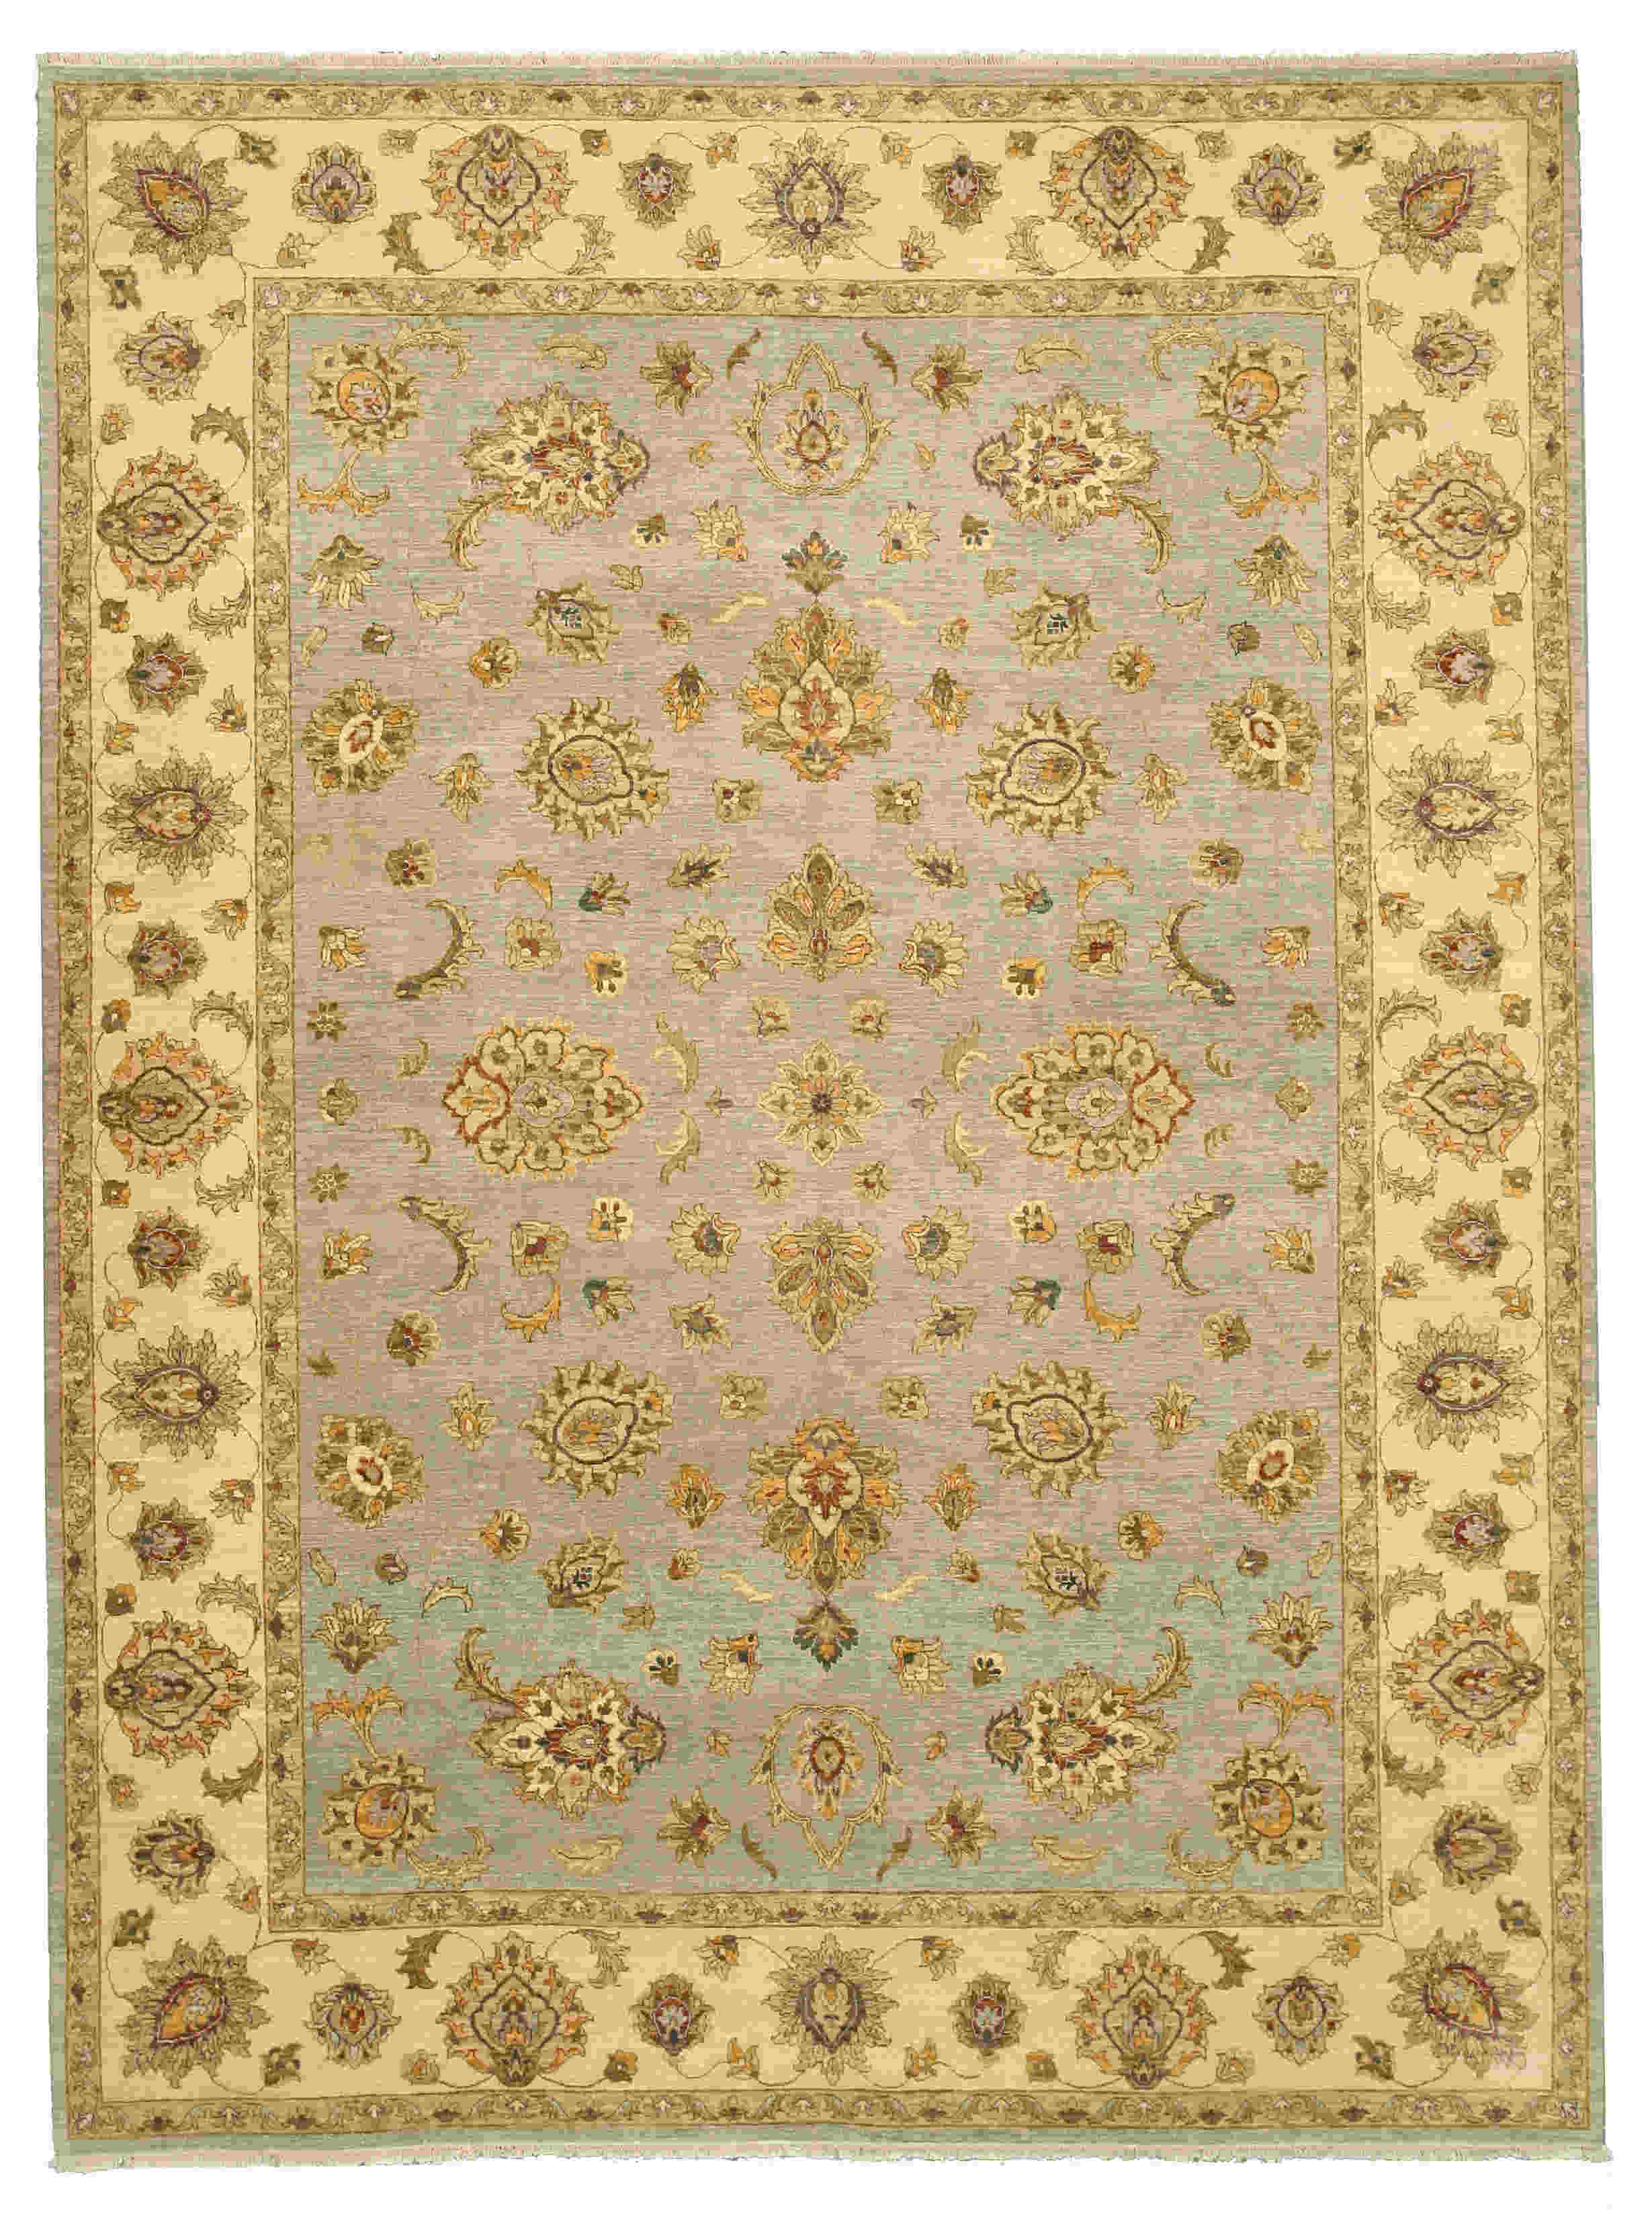 Eorc Nk57bl Blue Hand Knotted Wool Agra Rug